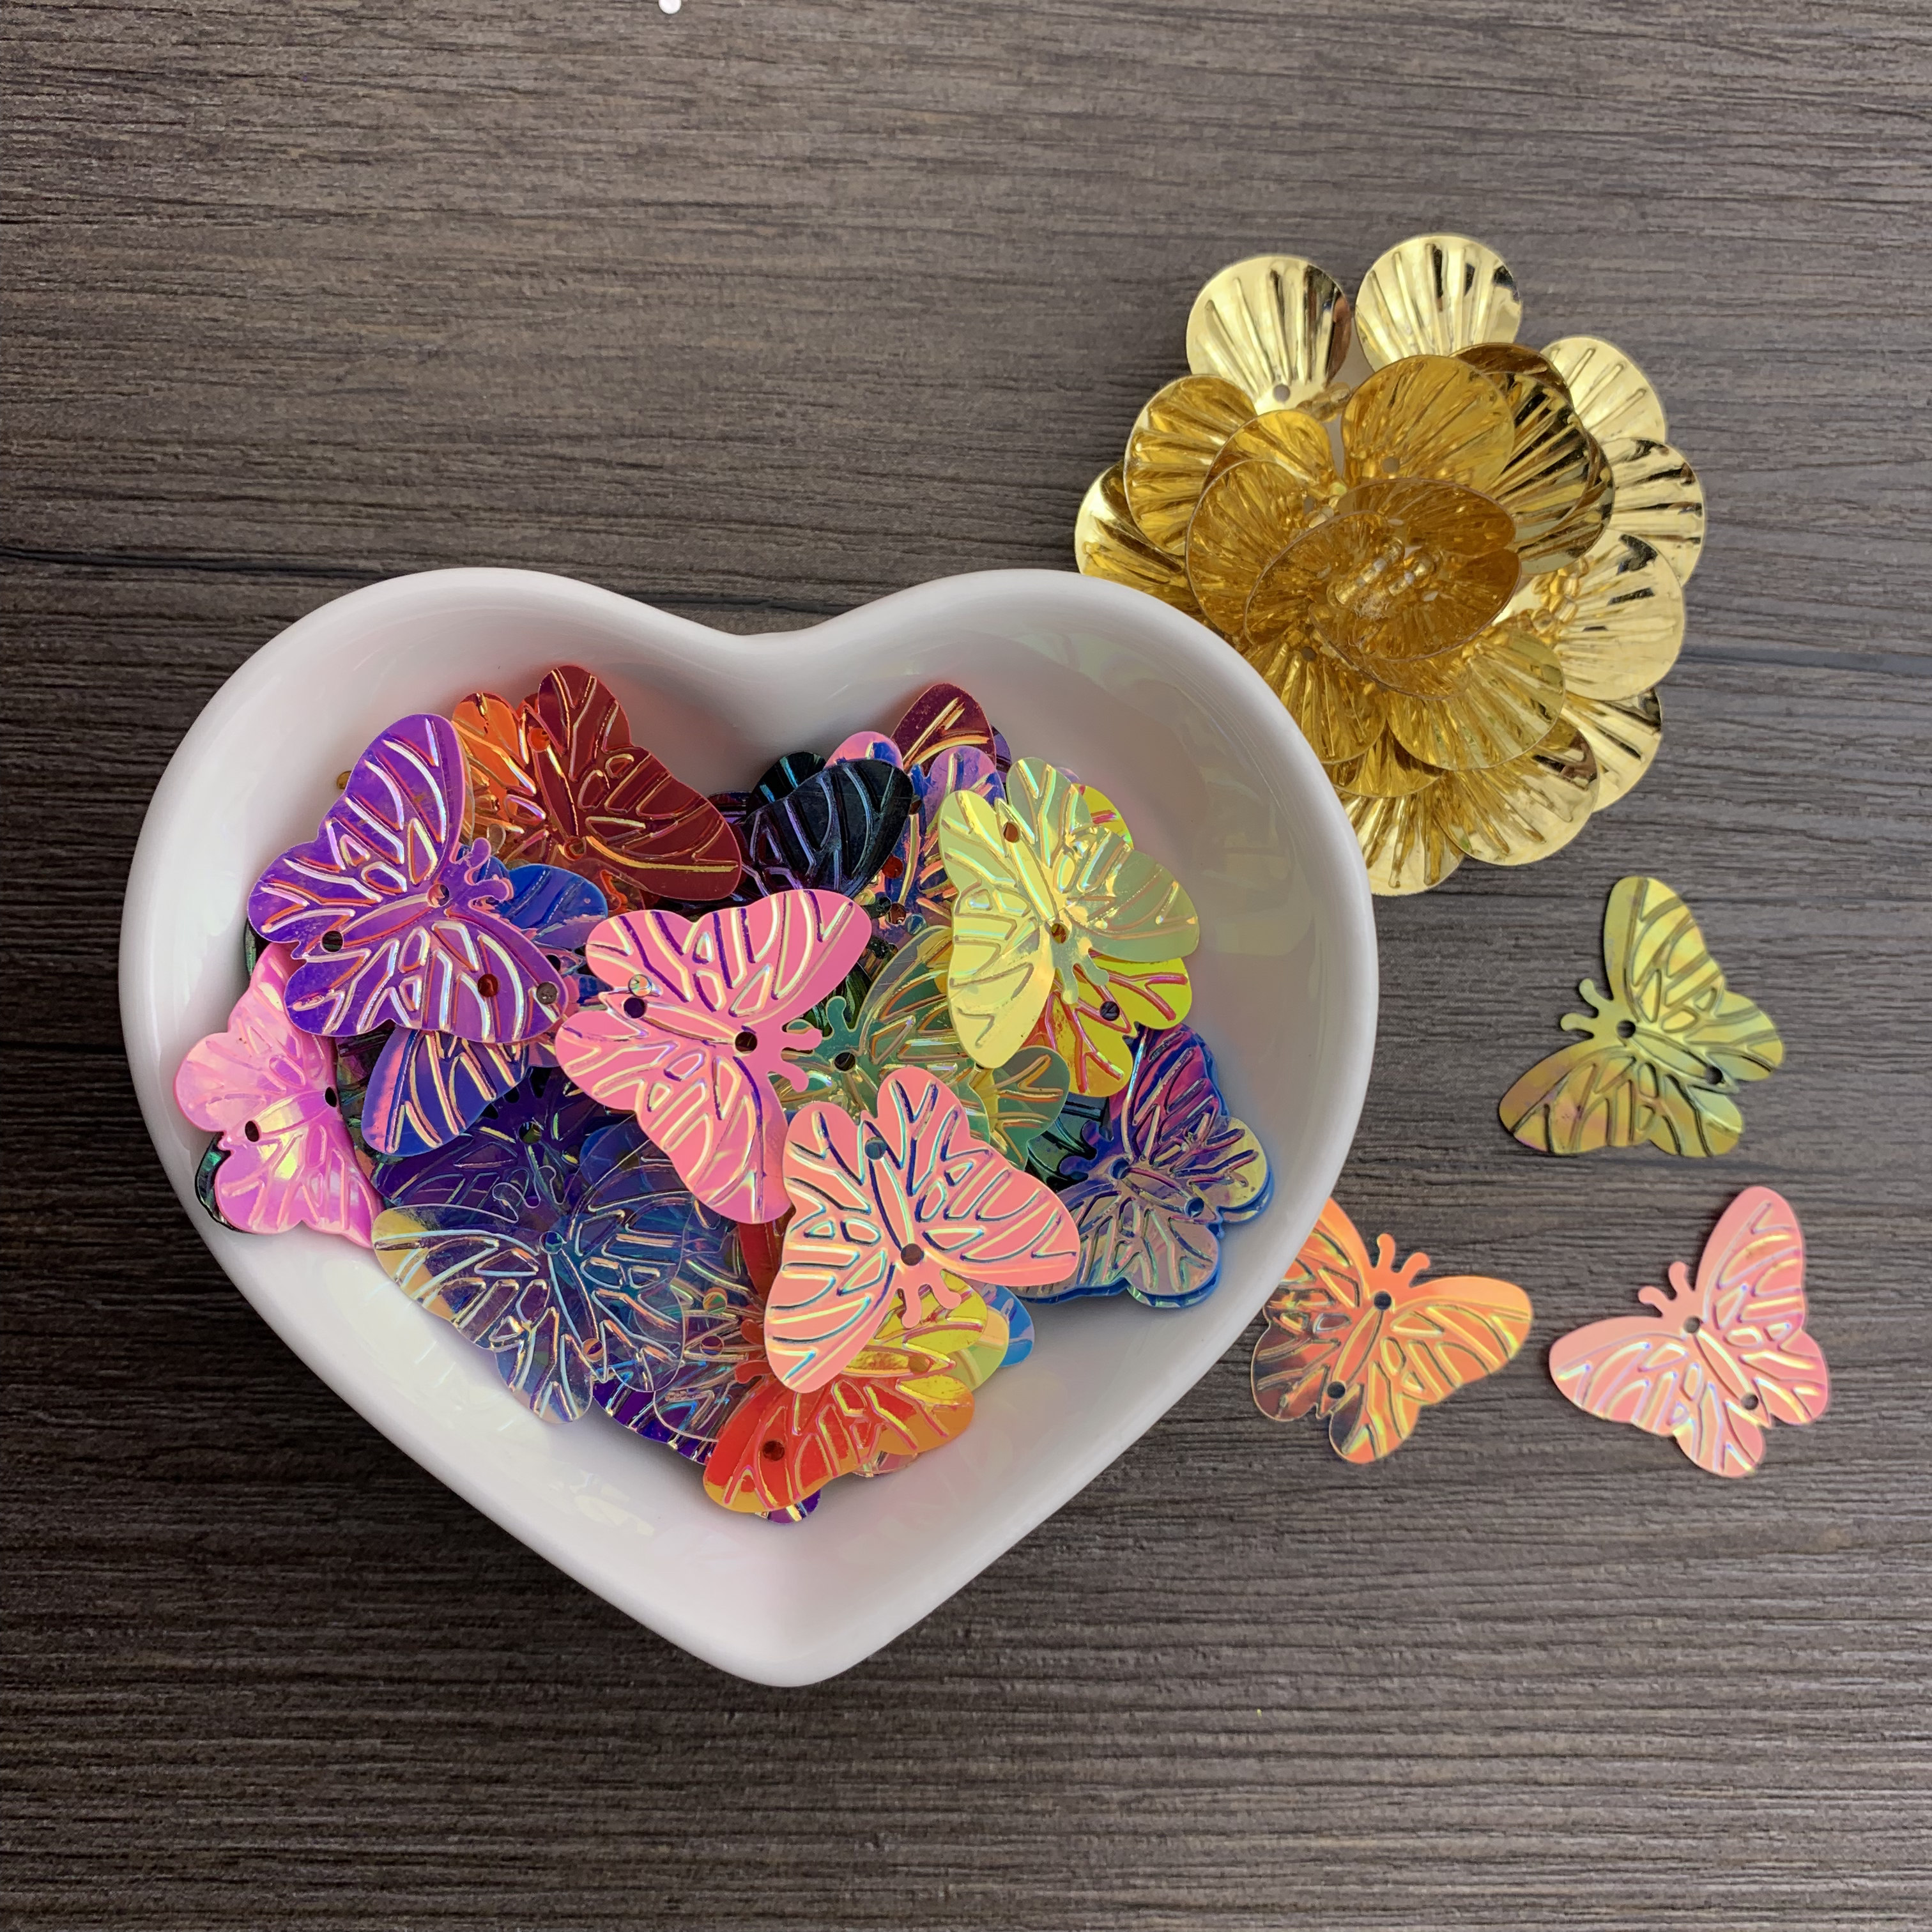 150pcs(15g)Butterfly Sequins 20mm Butterfly Shape Beads Handmade Children's Hair Accessories DIY Clothing Accessories